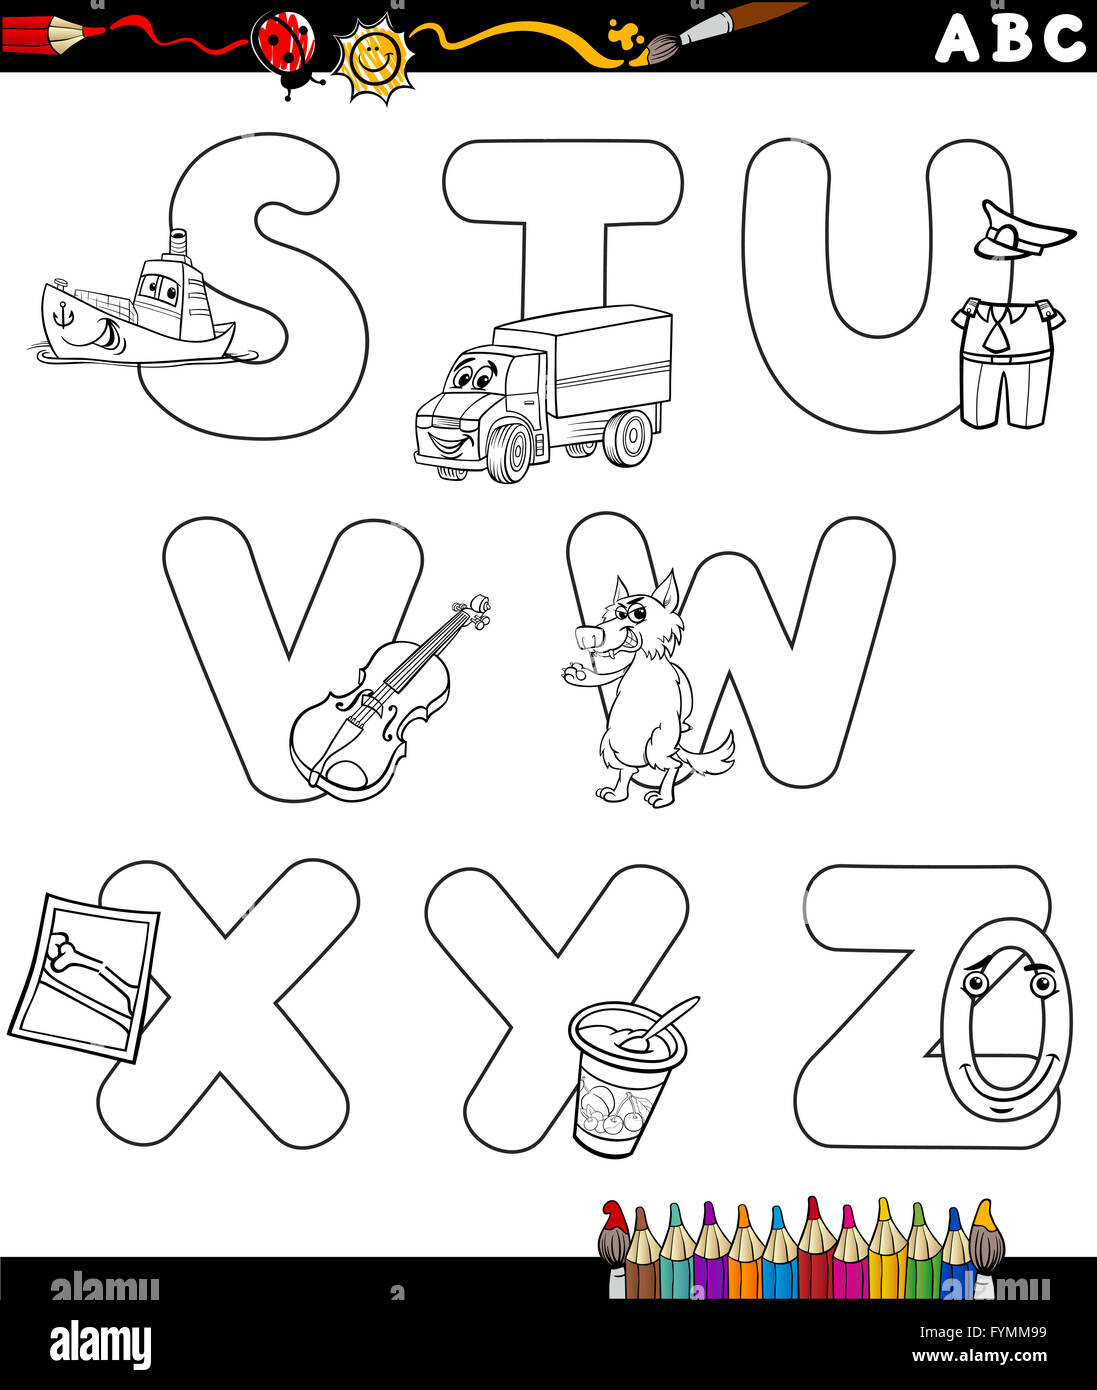 Cartoon-Alphabet-Malvorlagen Stockfoto, Bild: 103102533 - Alamy